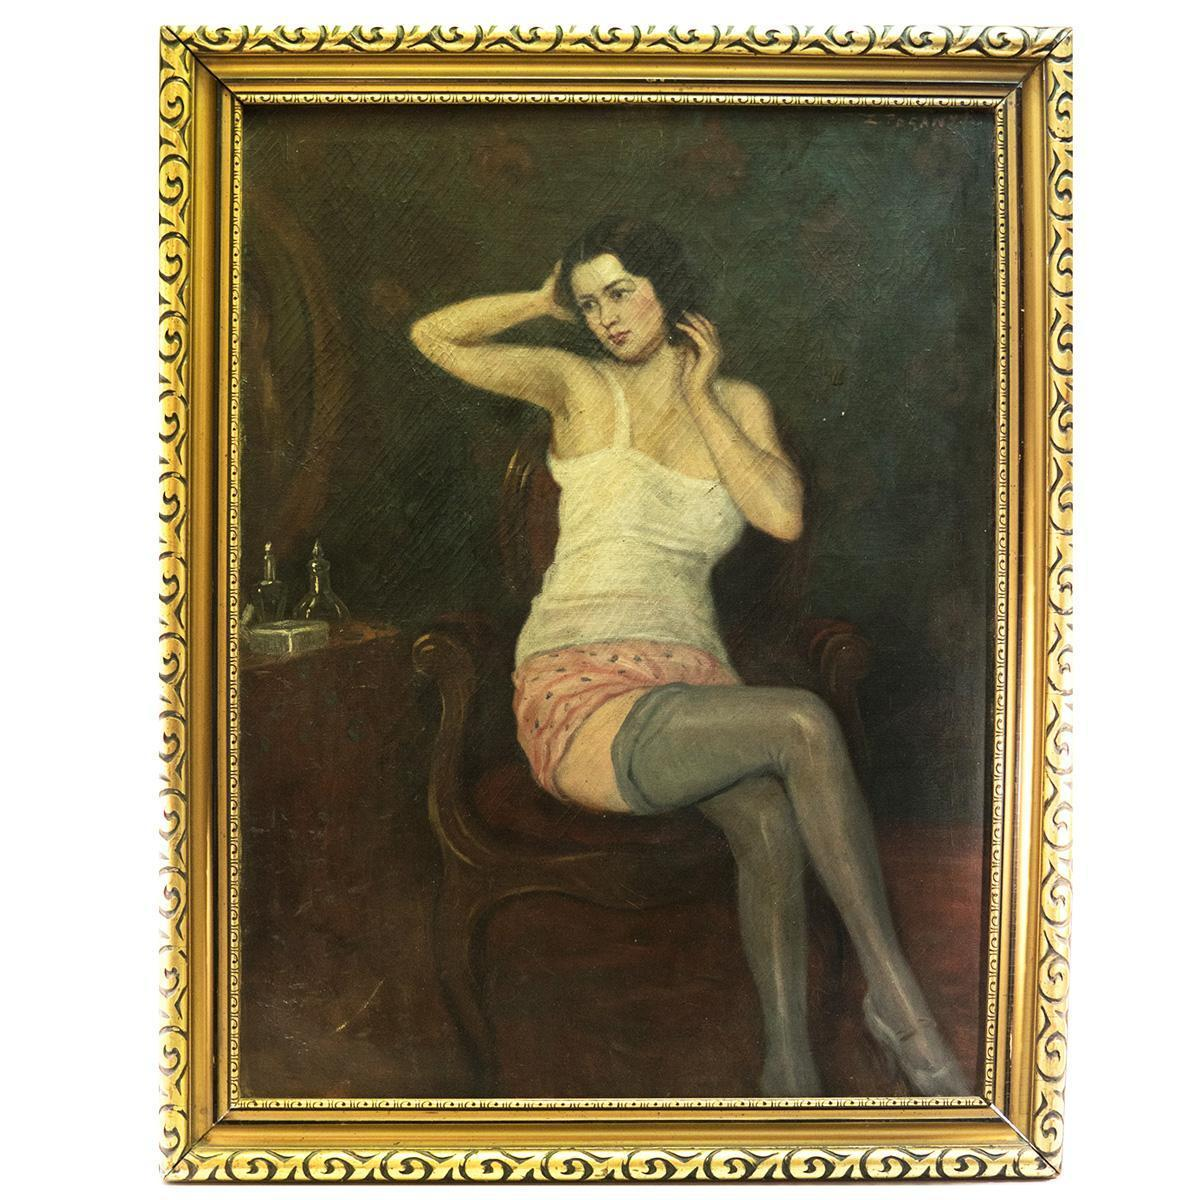 "Antique French Oil Painting, Portrait of a Woman in Dressing Room, Impressionist Interior. Frame, 36"" x 28.25"""